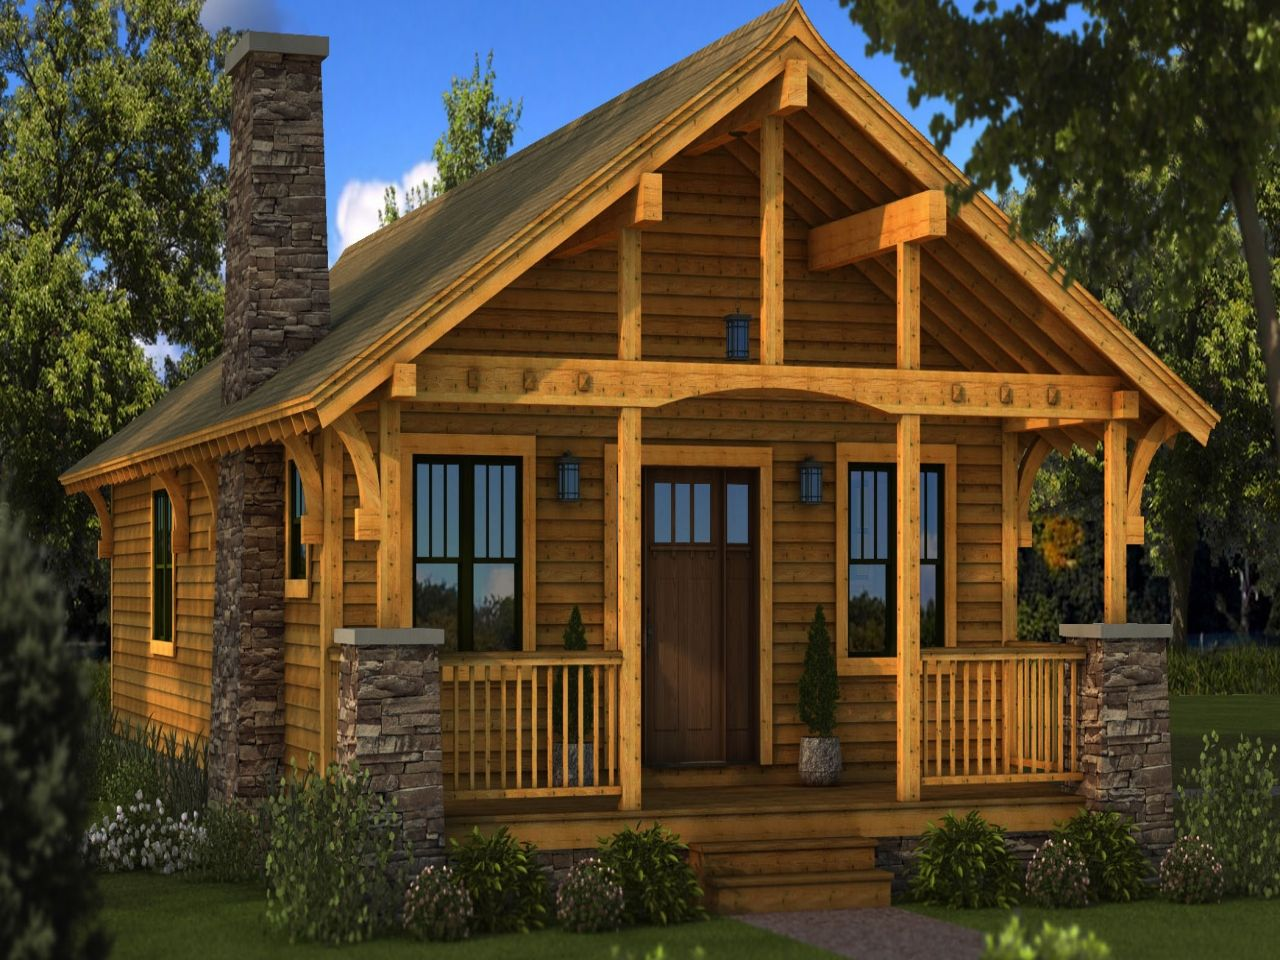 Small log cabin homes plans one story cabin plans for Small cabins and cottages